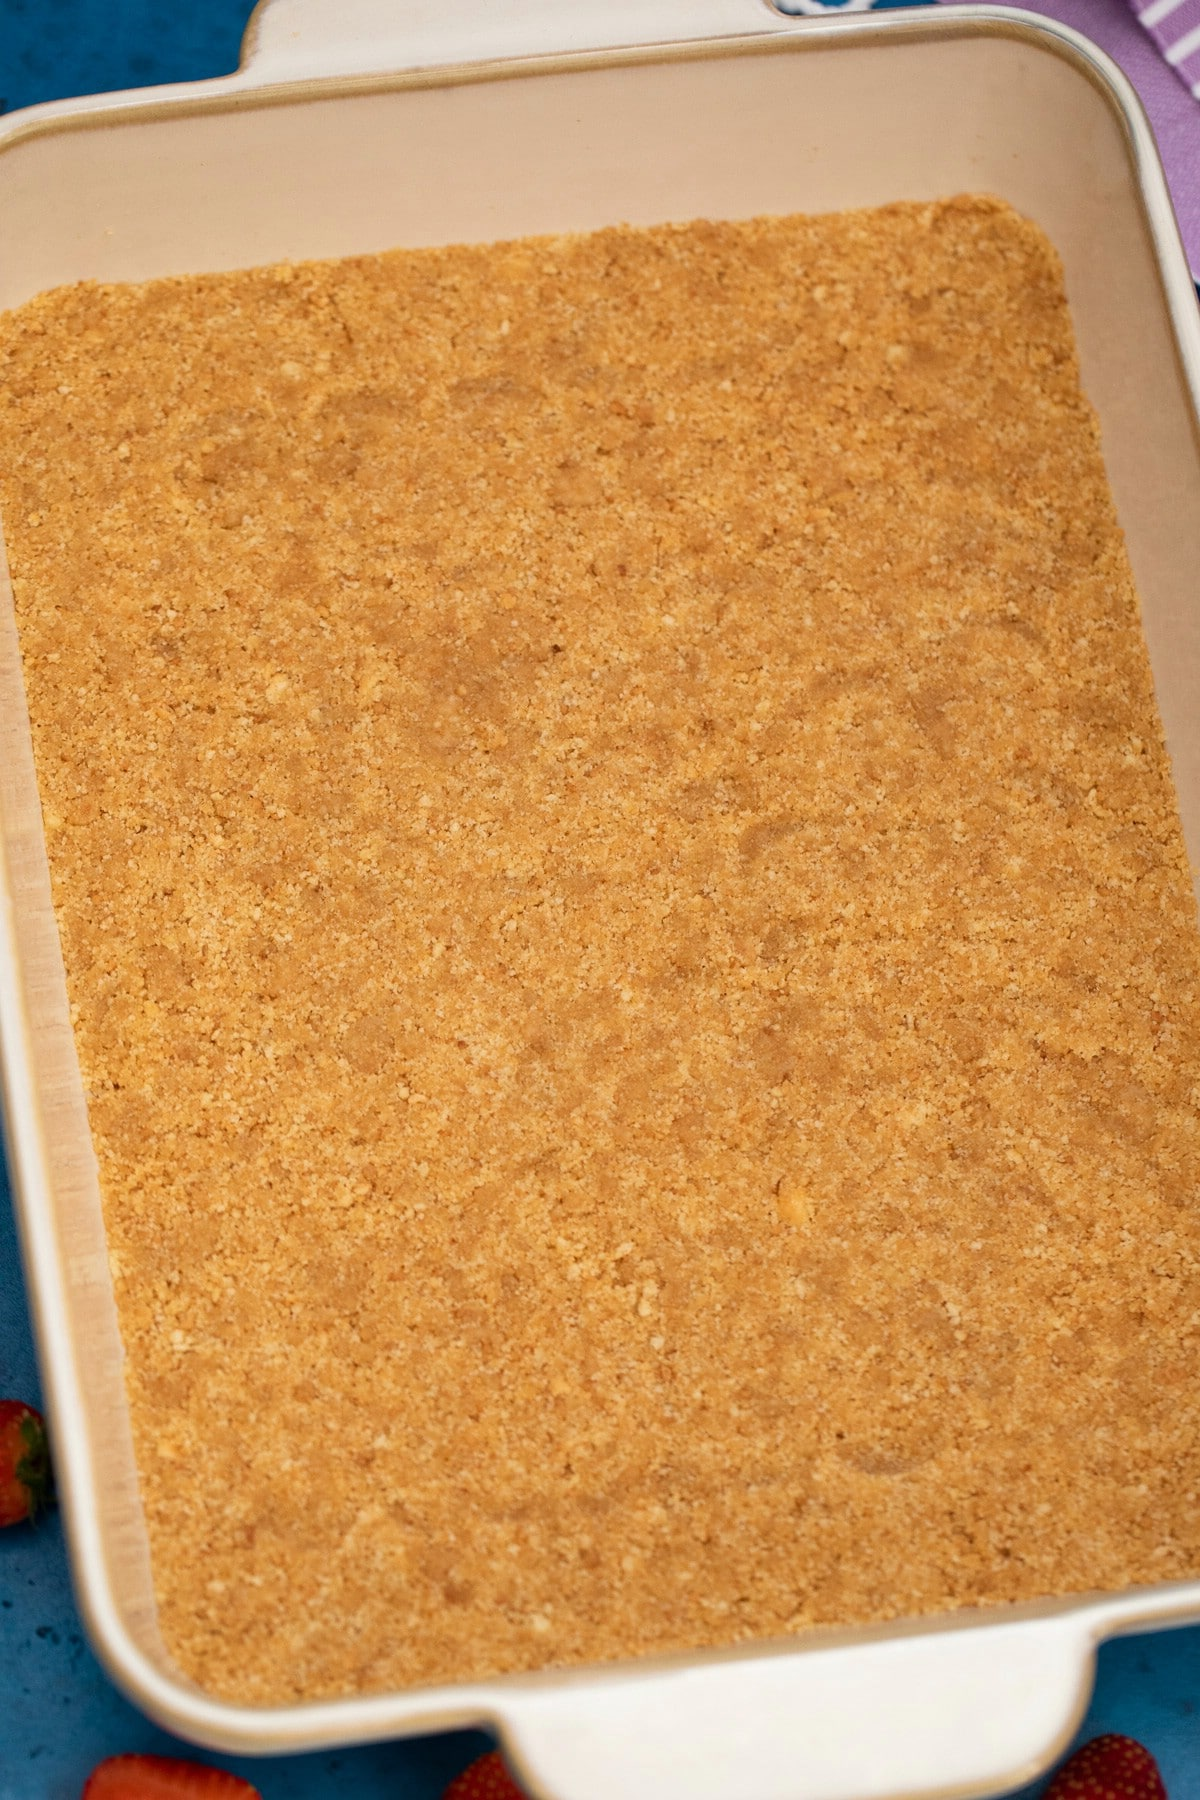 Baking dish with graham cracker crust on counter